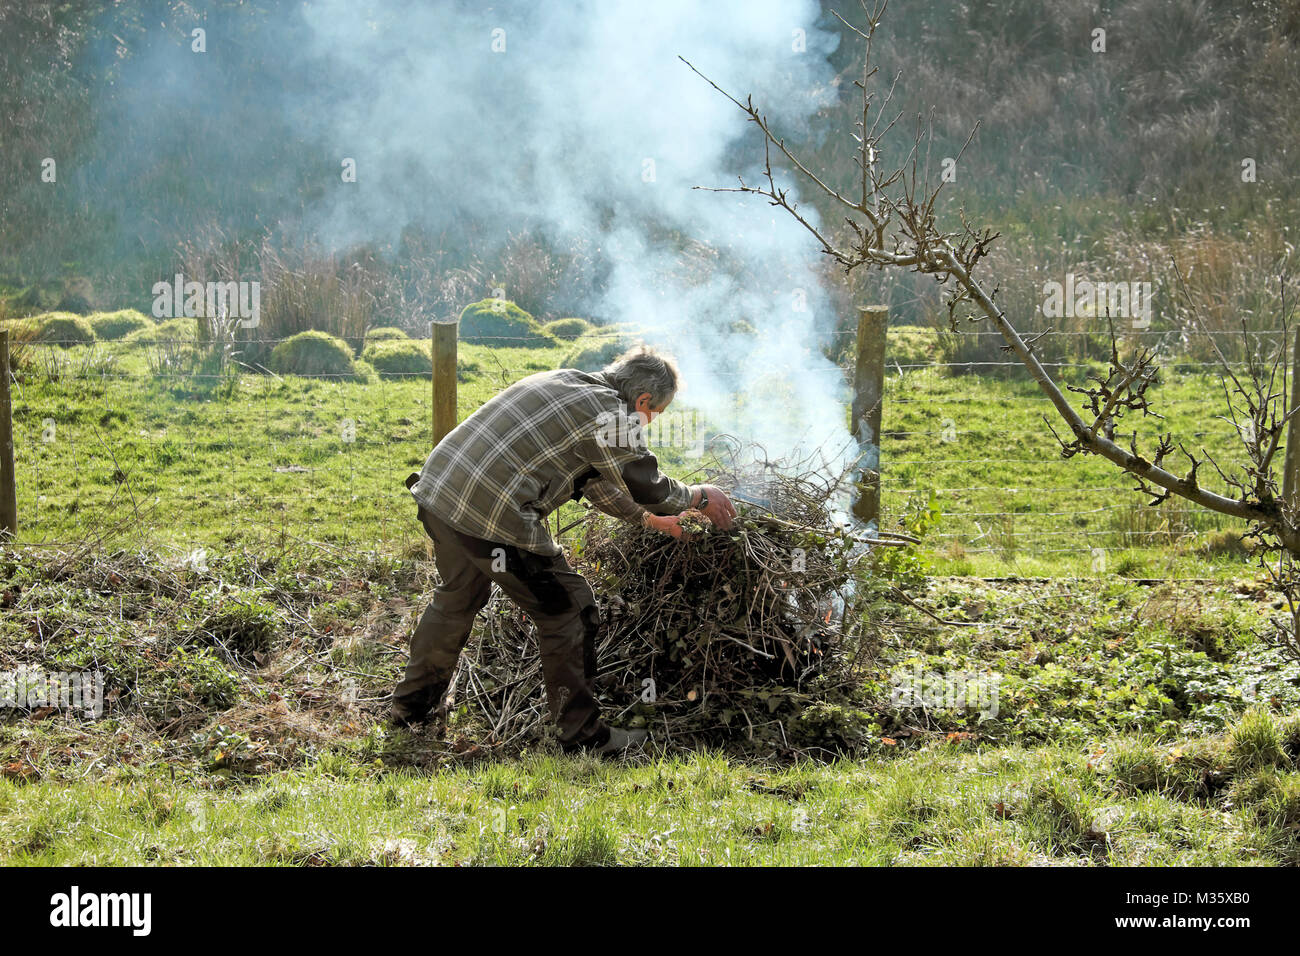 A man lighting making a bonfire in the garden tidying up and burning old sticks and branches in preparation for - Stock Image